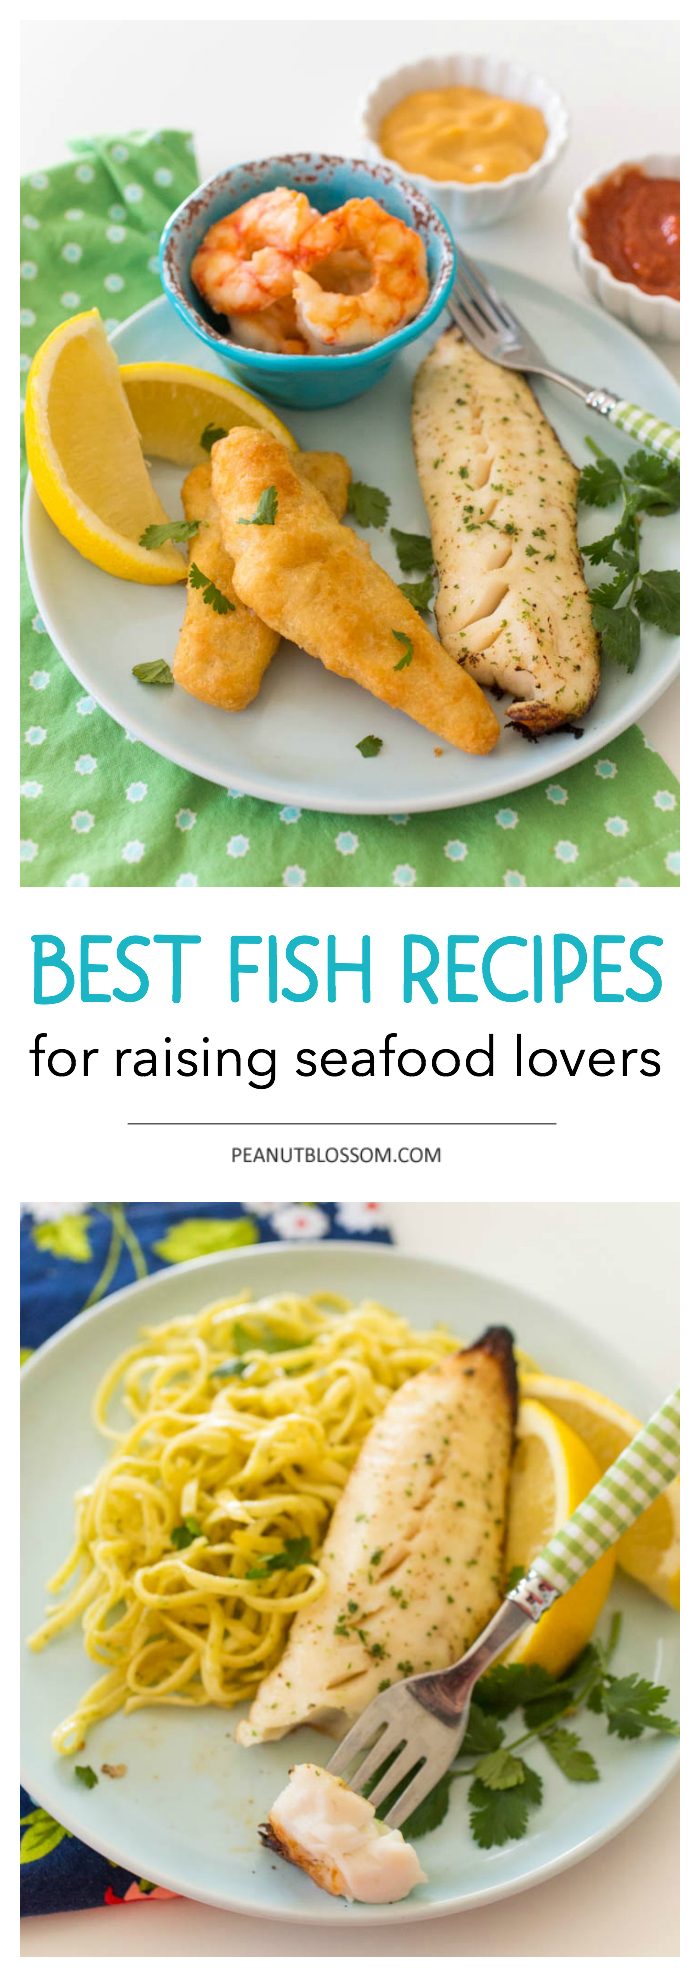 The best fish recipes for kids: Introducing seafood to fussy eaters